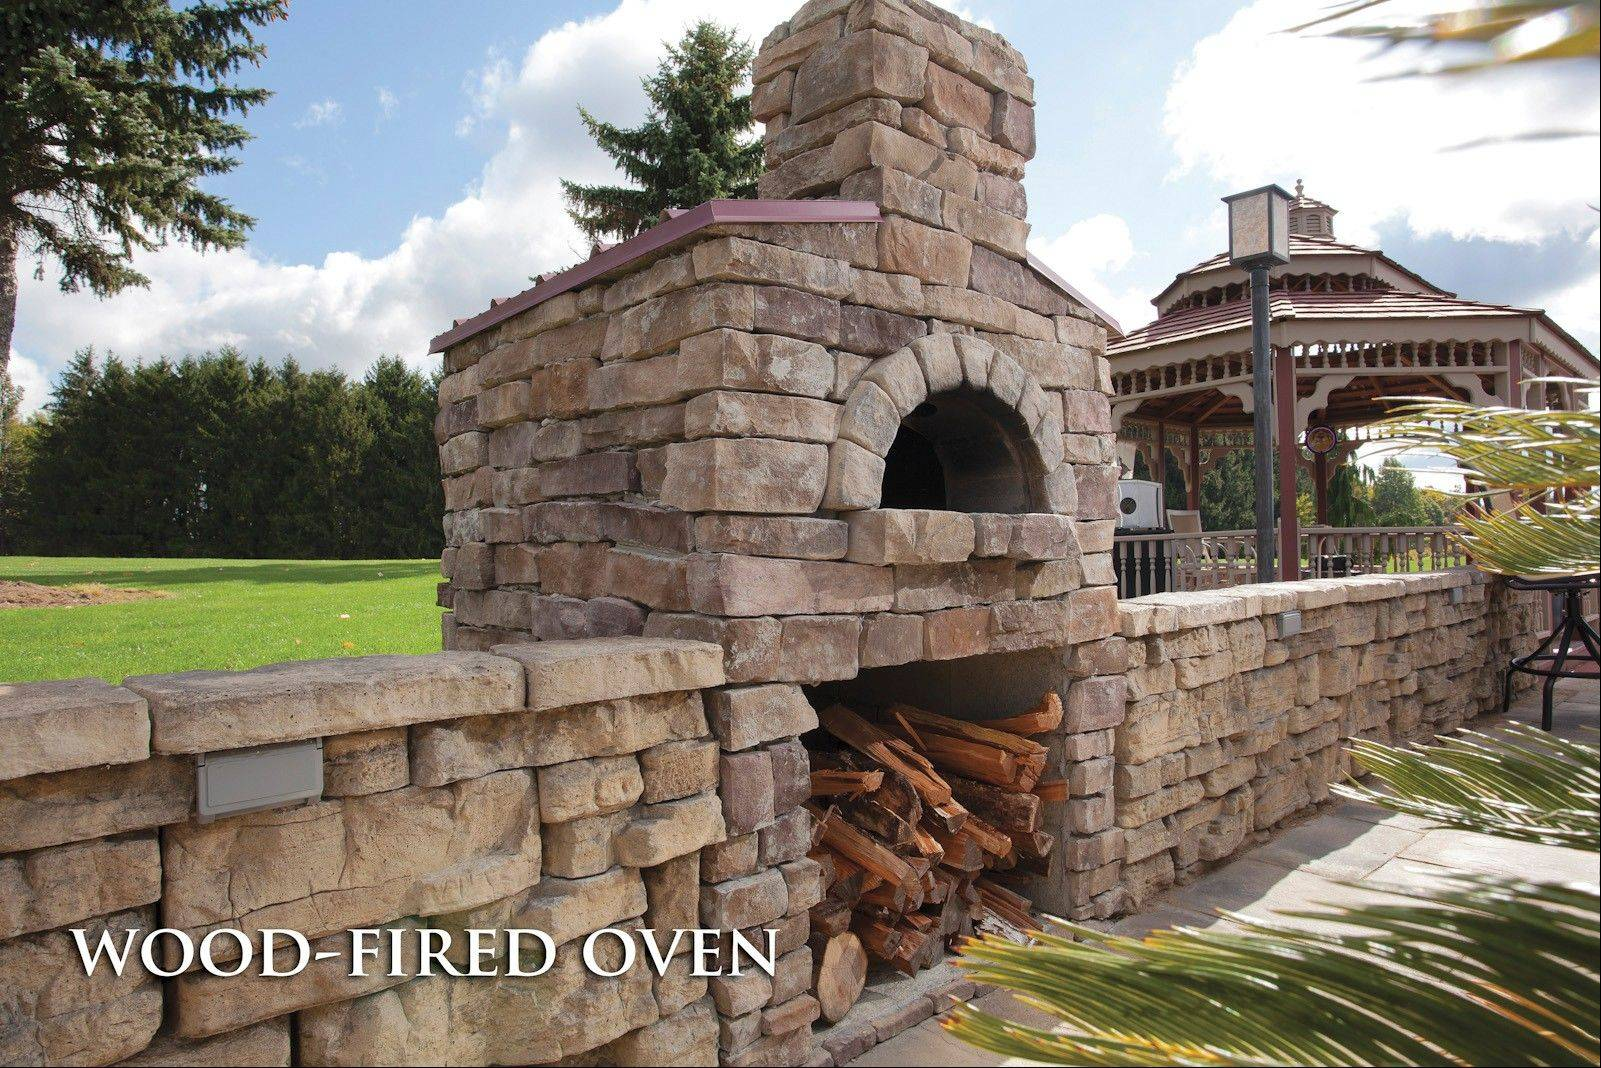 Construction of the company's wood-fired oven kit generally takes about a week, a big benefit over the months it can take to build one from scratch.